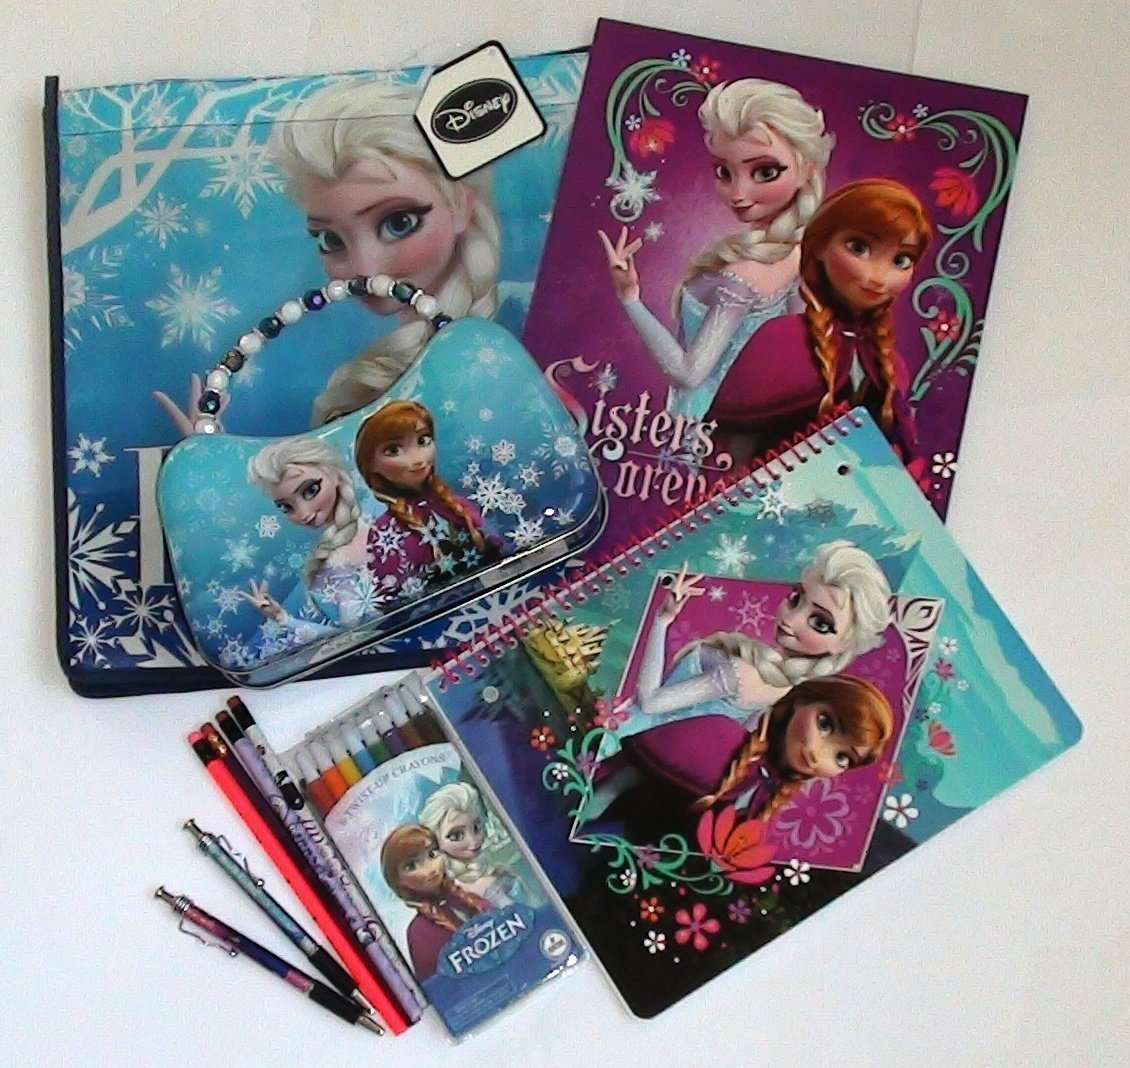 Disney Frozen Elsa and Anna Stationery Gift Set, Ideal for All Frozen Fans!